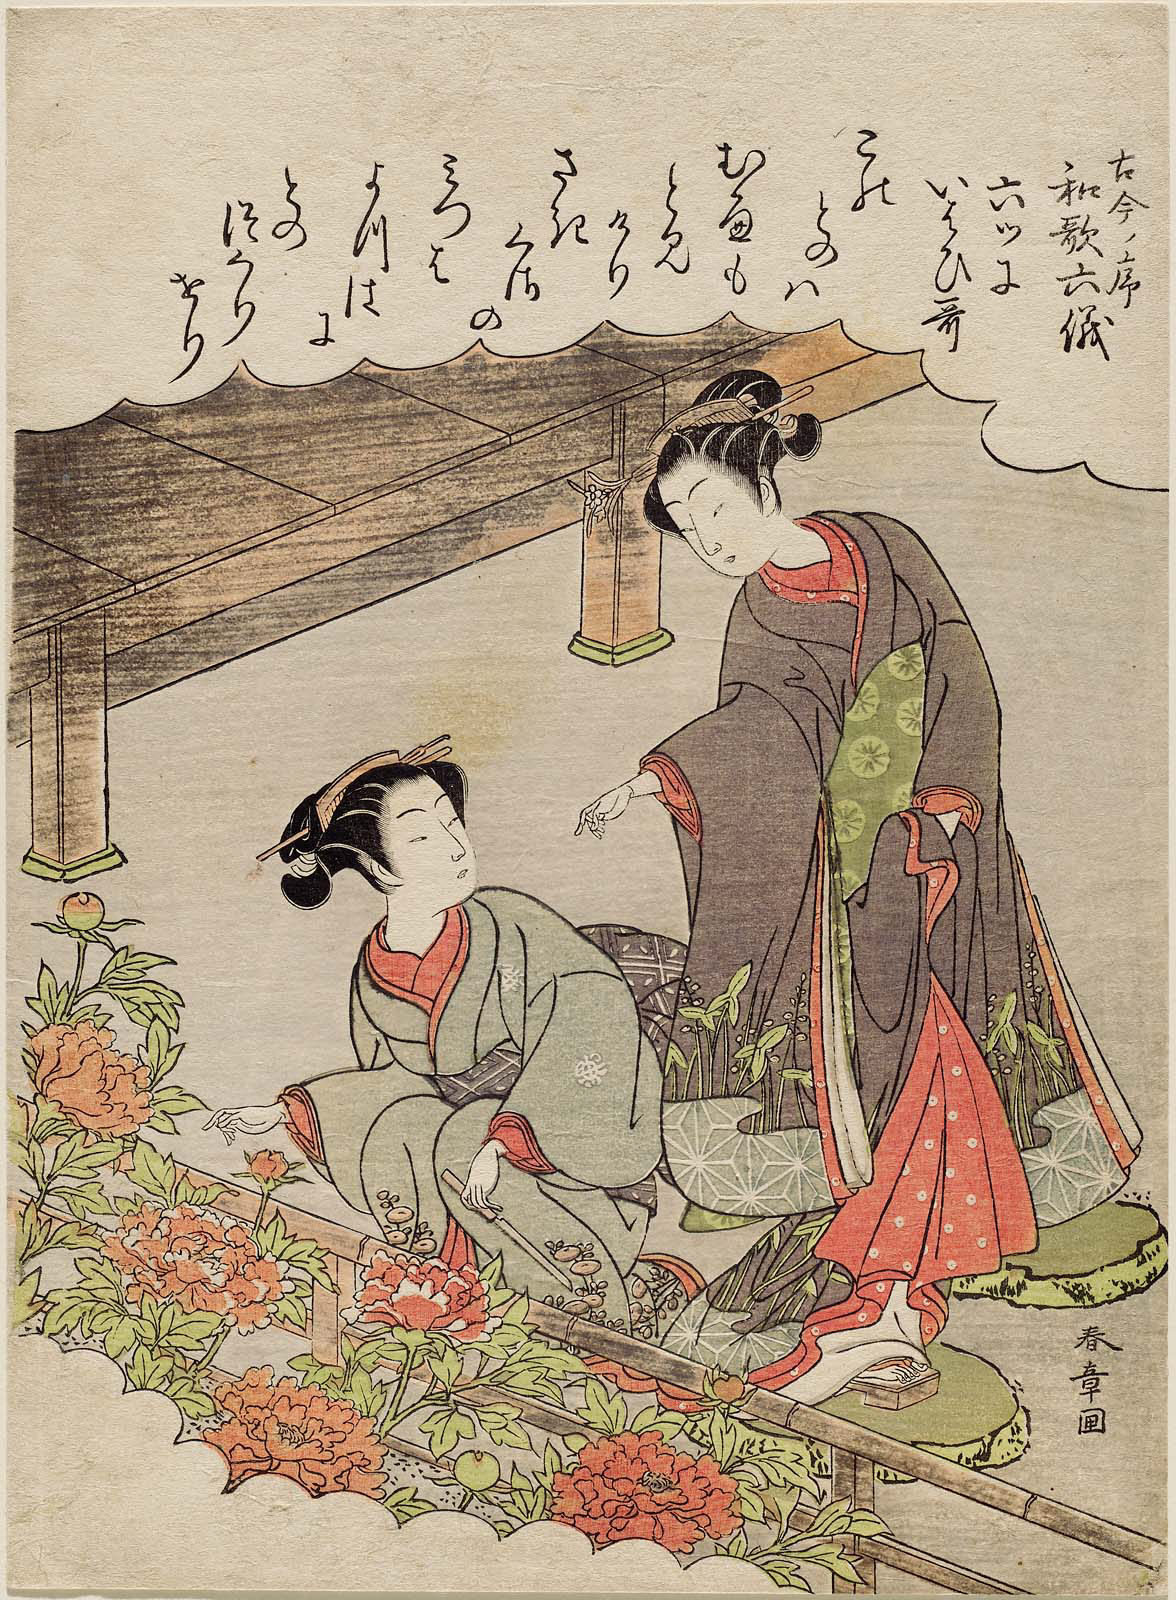 no eulogistic poems muttsu ni iwai uta from the series six 6 eulogistic poems muttsu ni iwai uta from the series six types of waka poetry as described in the preface of the kokinshatilde kokin no jo waka rikugi